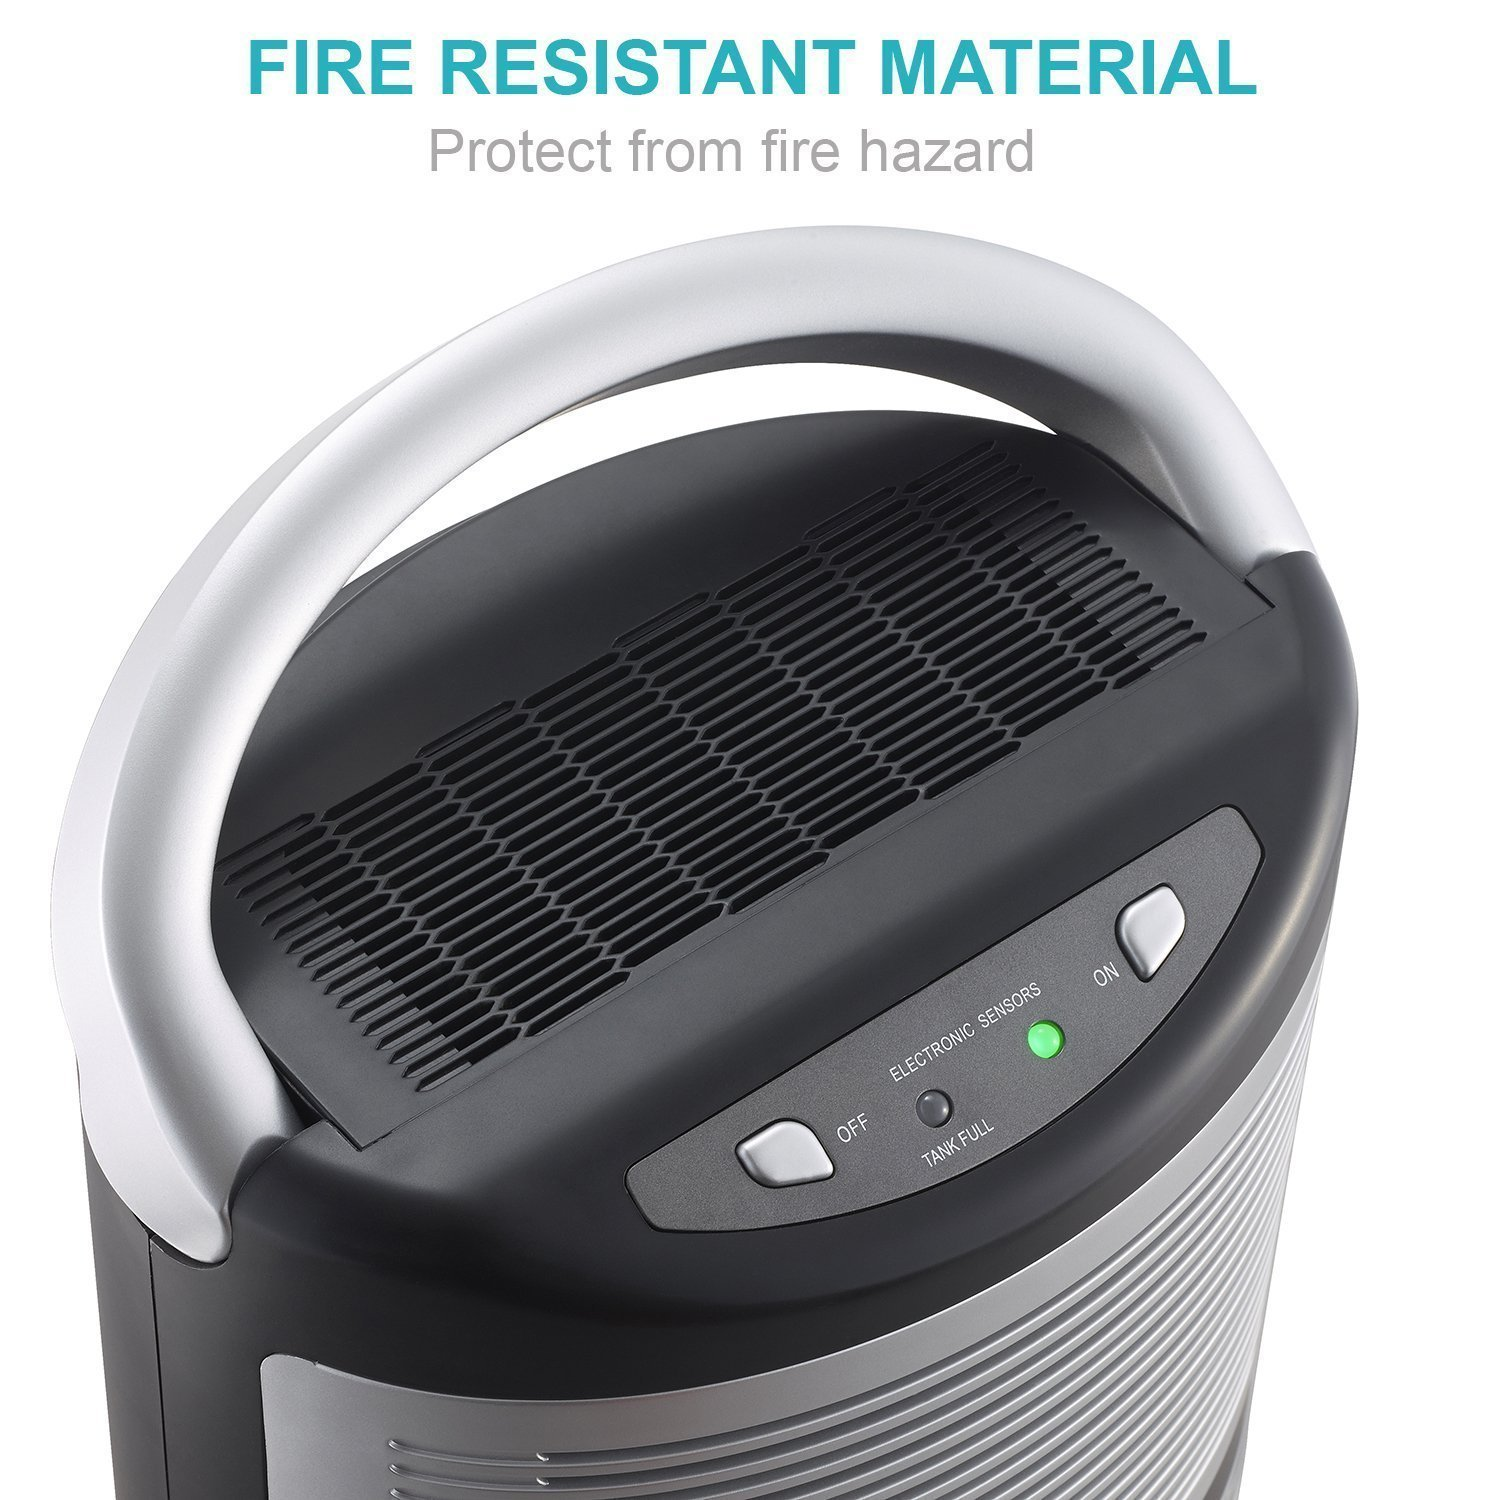 High Performance Low Energy Portable Dehumidifier with Air Purification Function